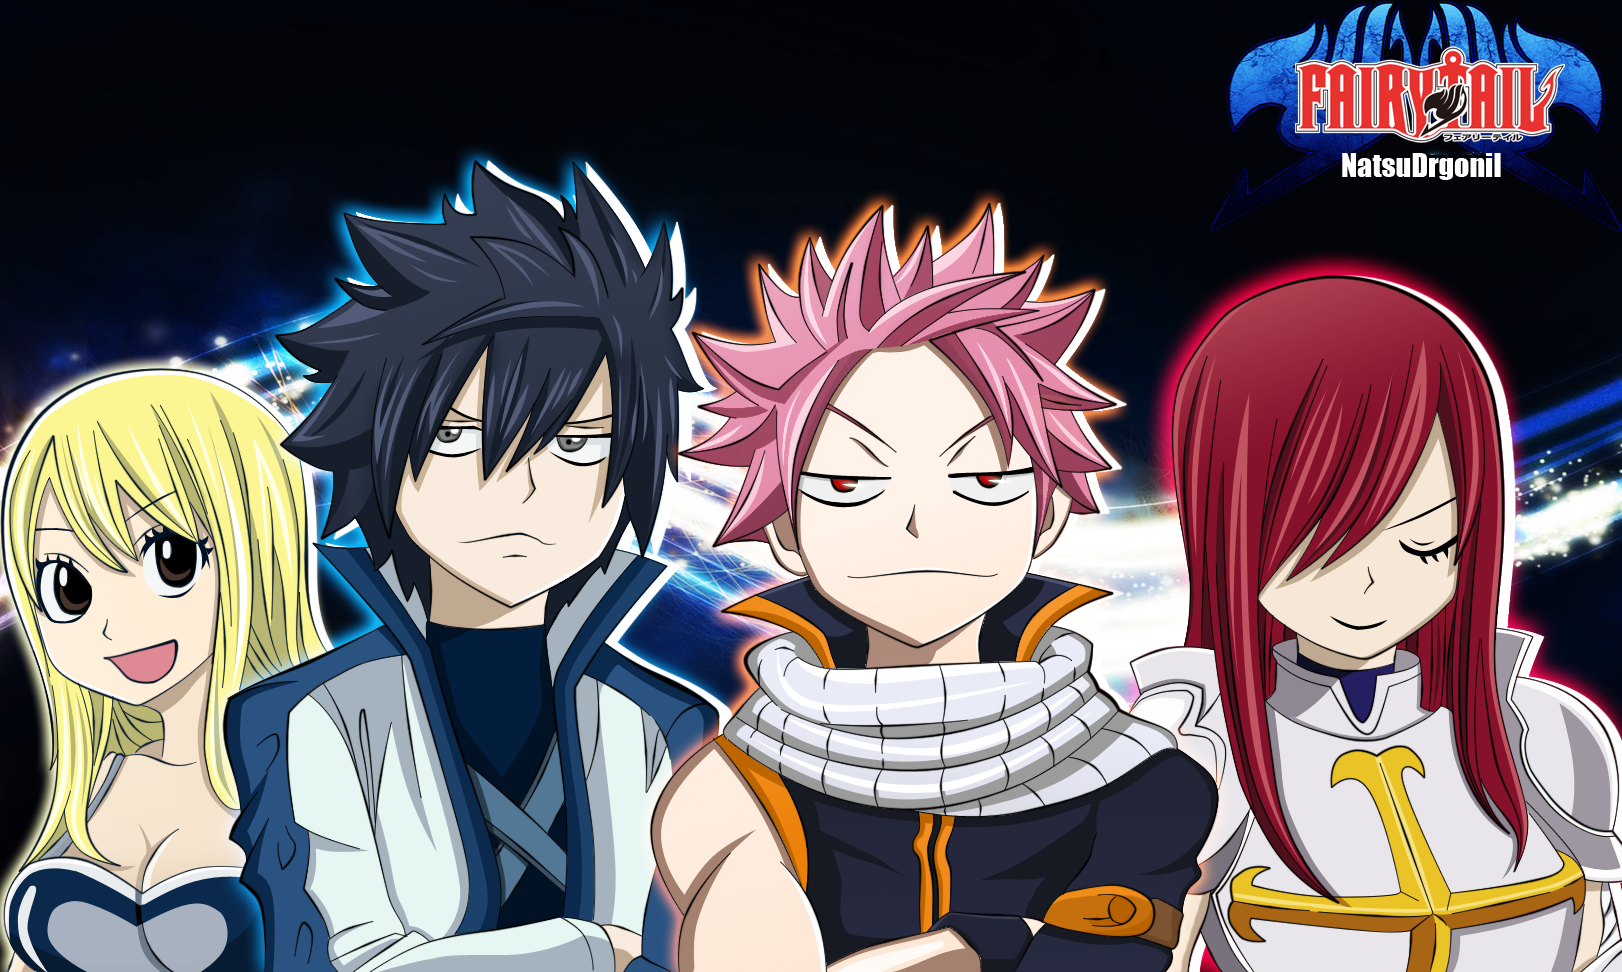 Fairy Tail Backgrounds 1622x972 Px VKP1414